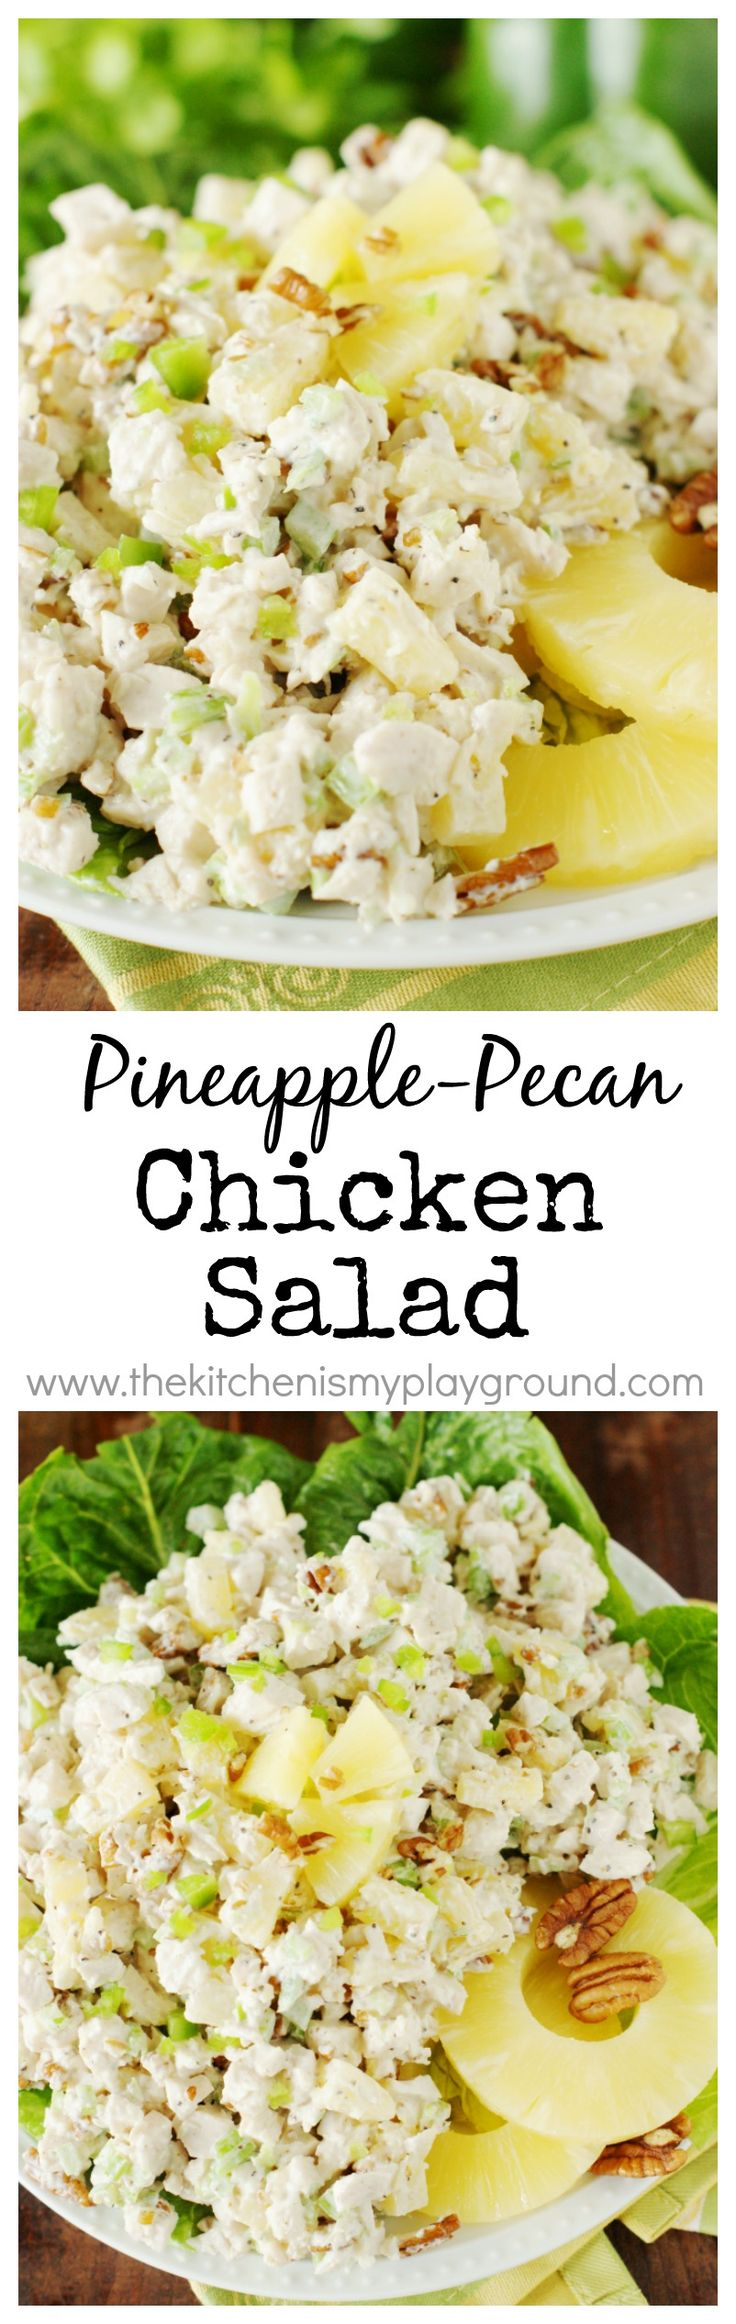 Pineapple-Pecan Chicken Salad ~ This refreshingly tasty chicken salad may just be the perfect #chickensalad for summer.  Or any time!   #pineapple www.thekitchenismyplayground.com